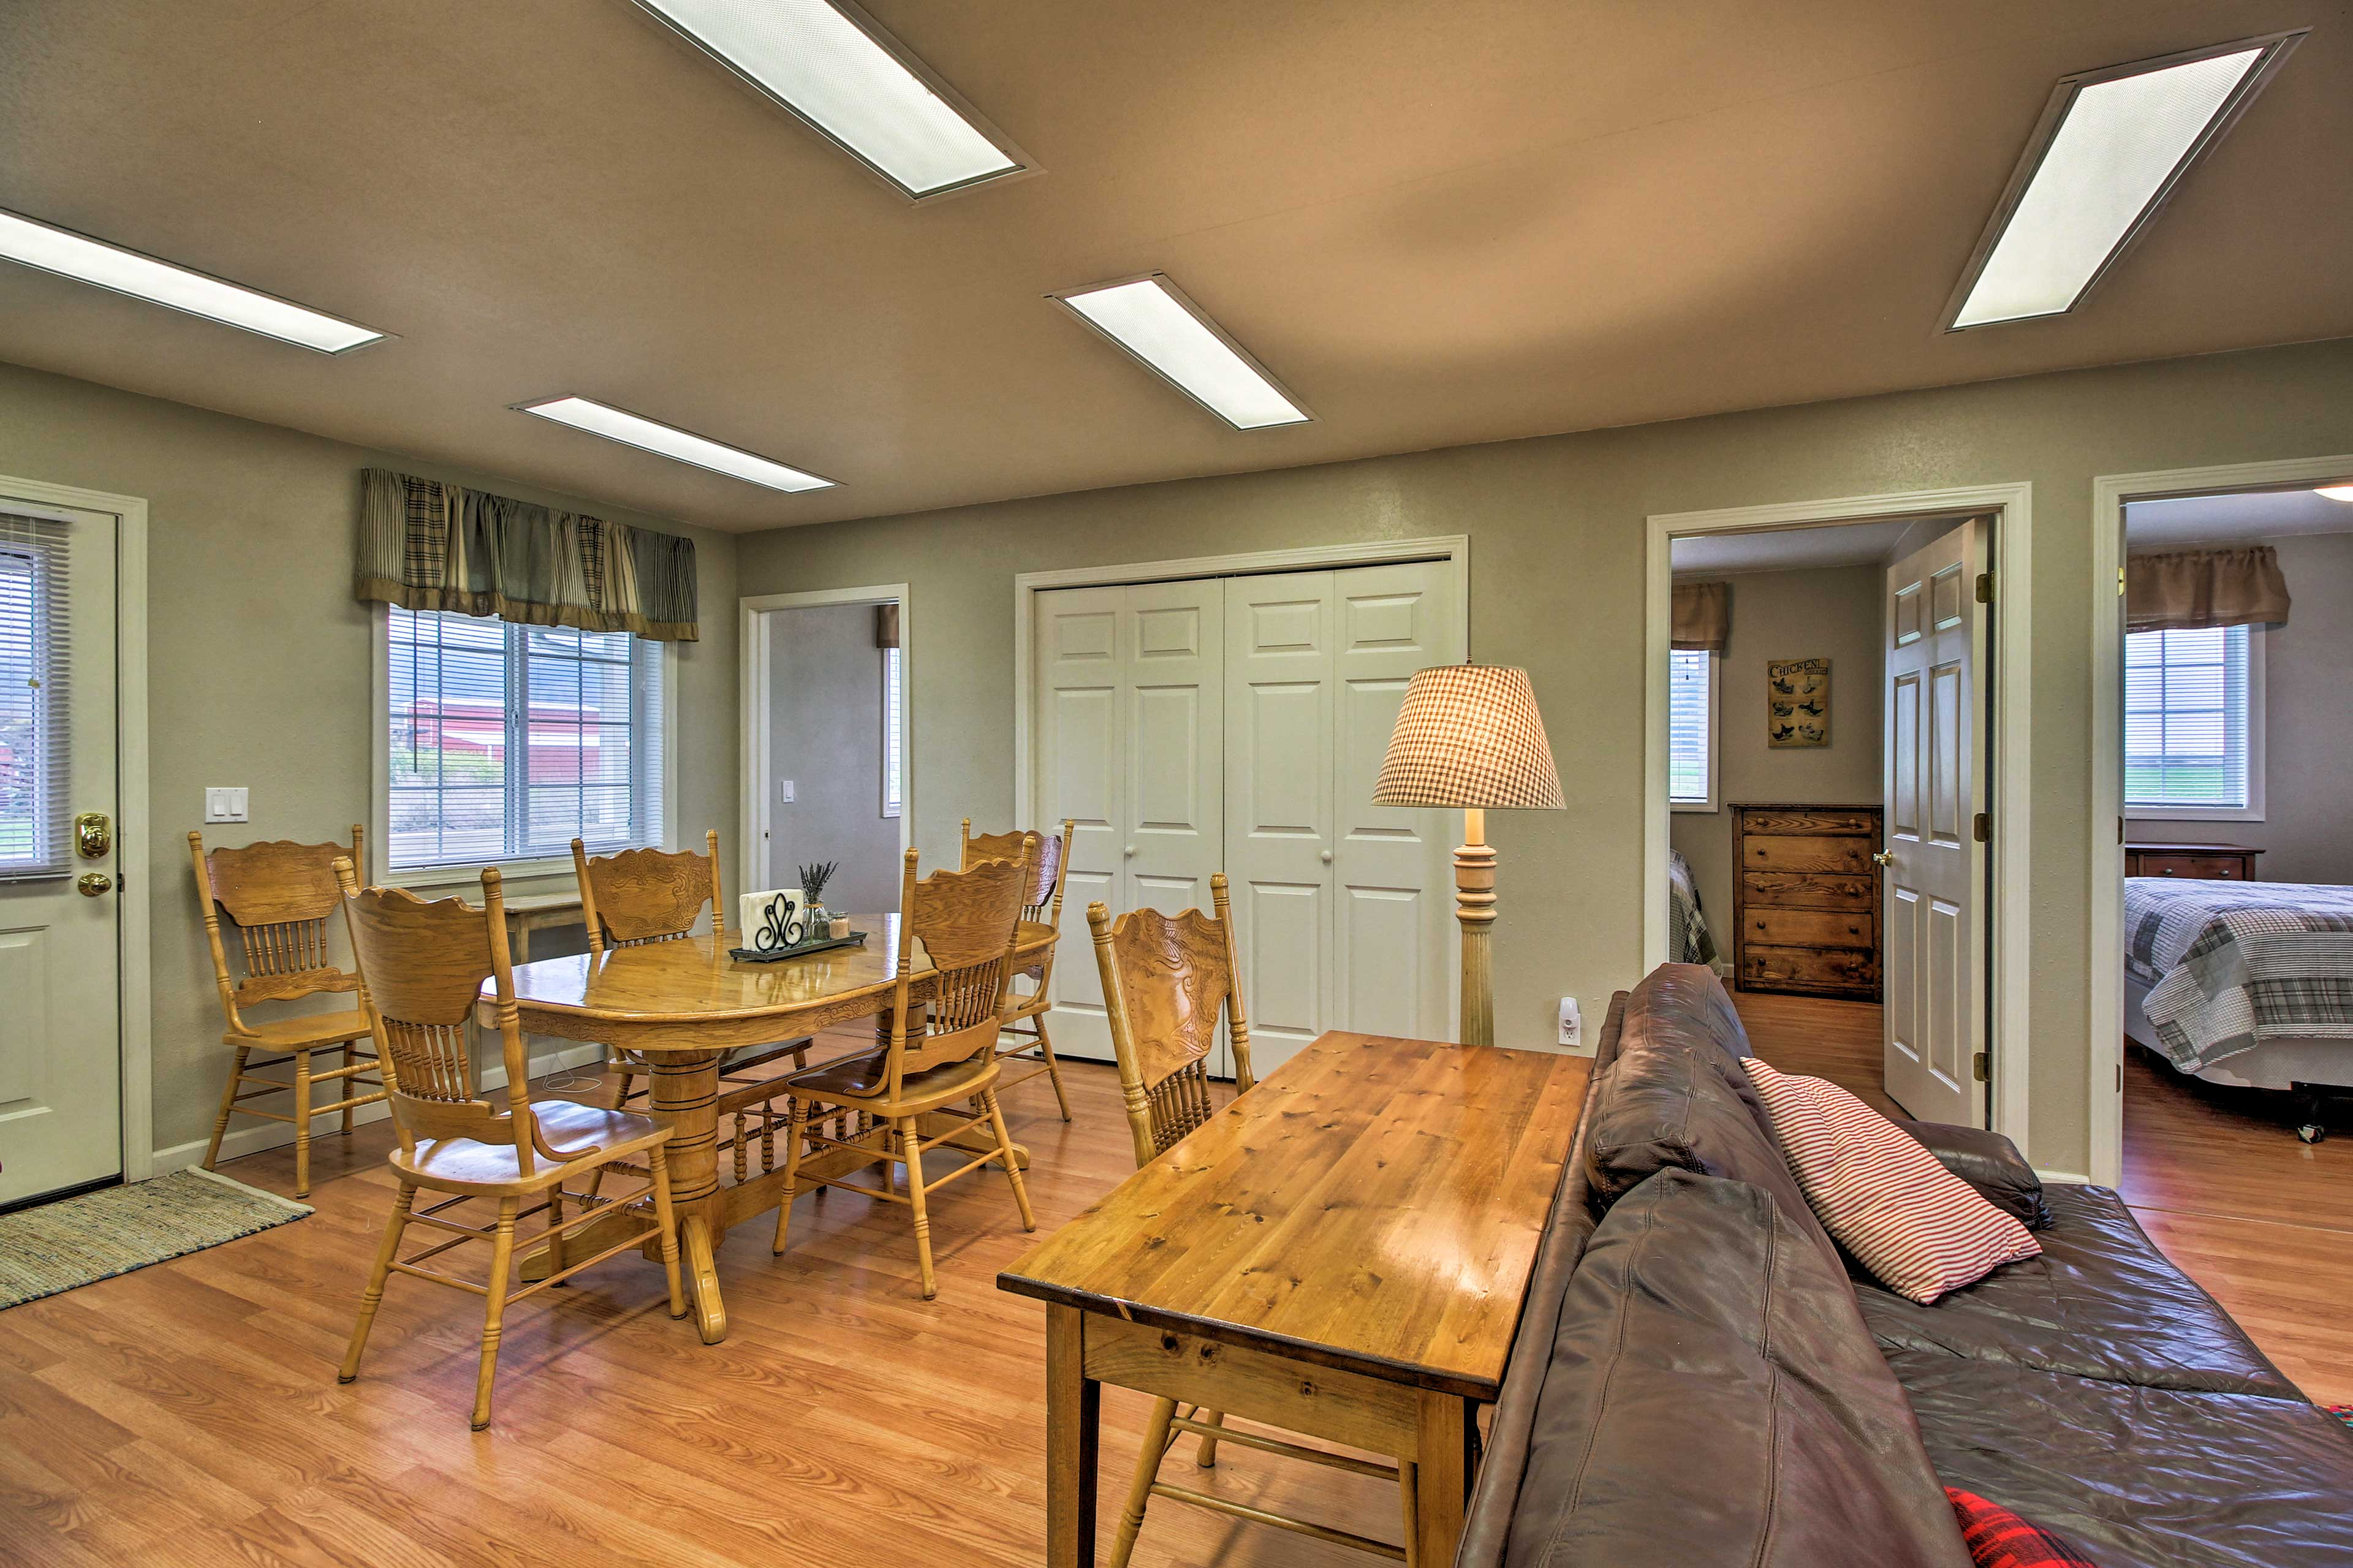 The 5-person dining table is adjacent to the living room.